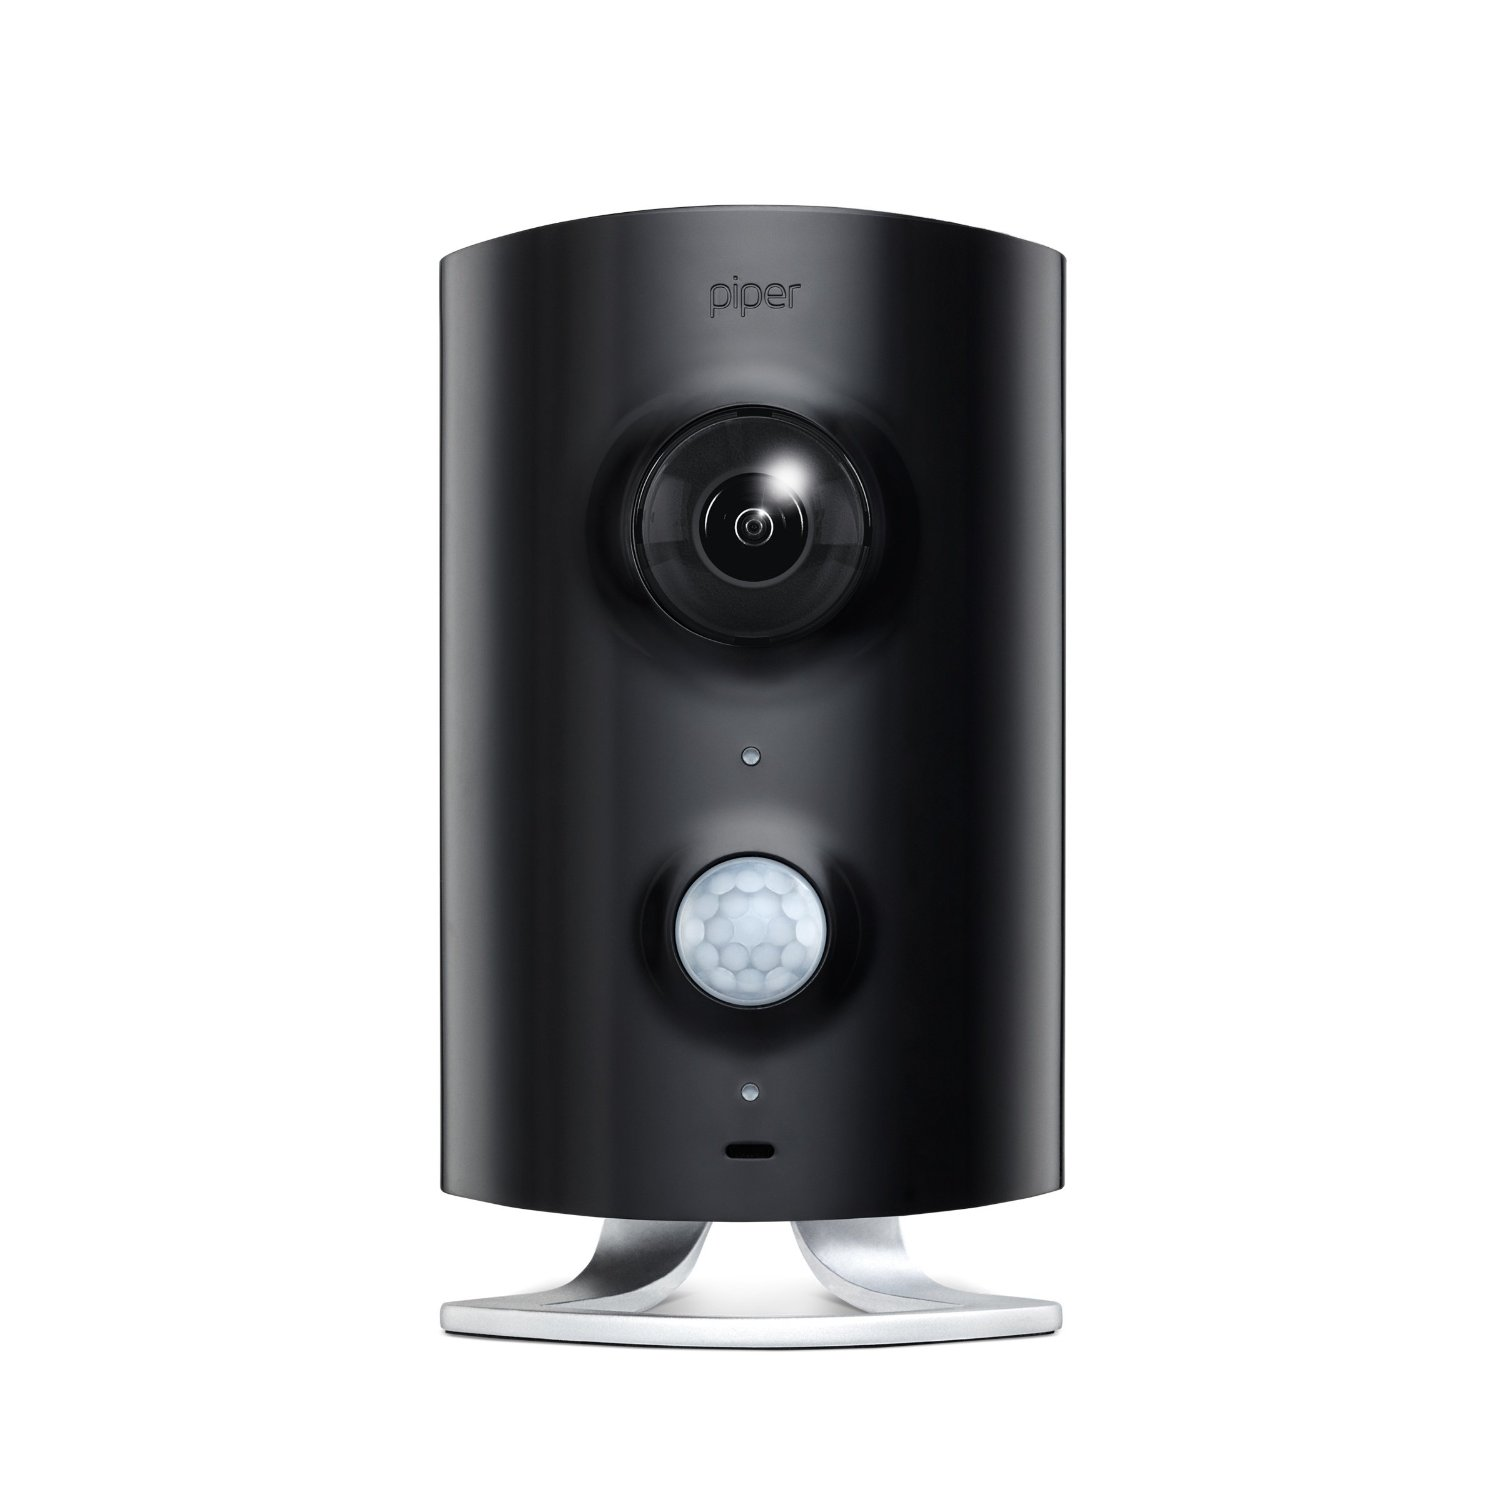 Piper Classic All-in-One Security System with Video Monitoring Camera